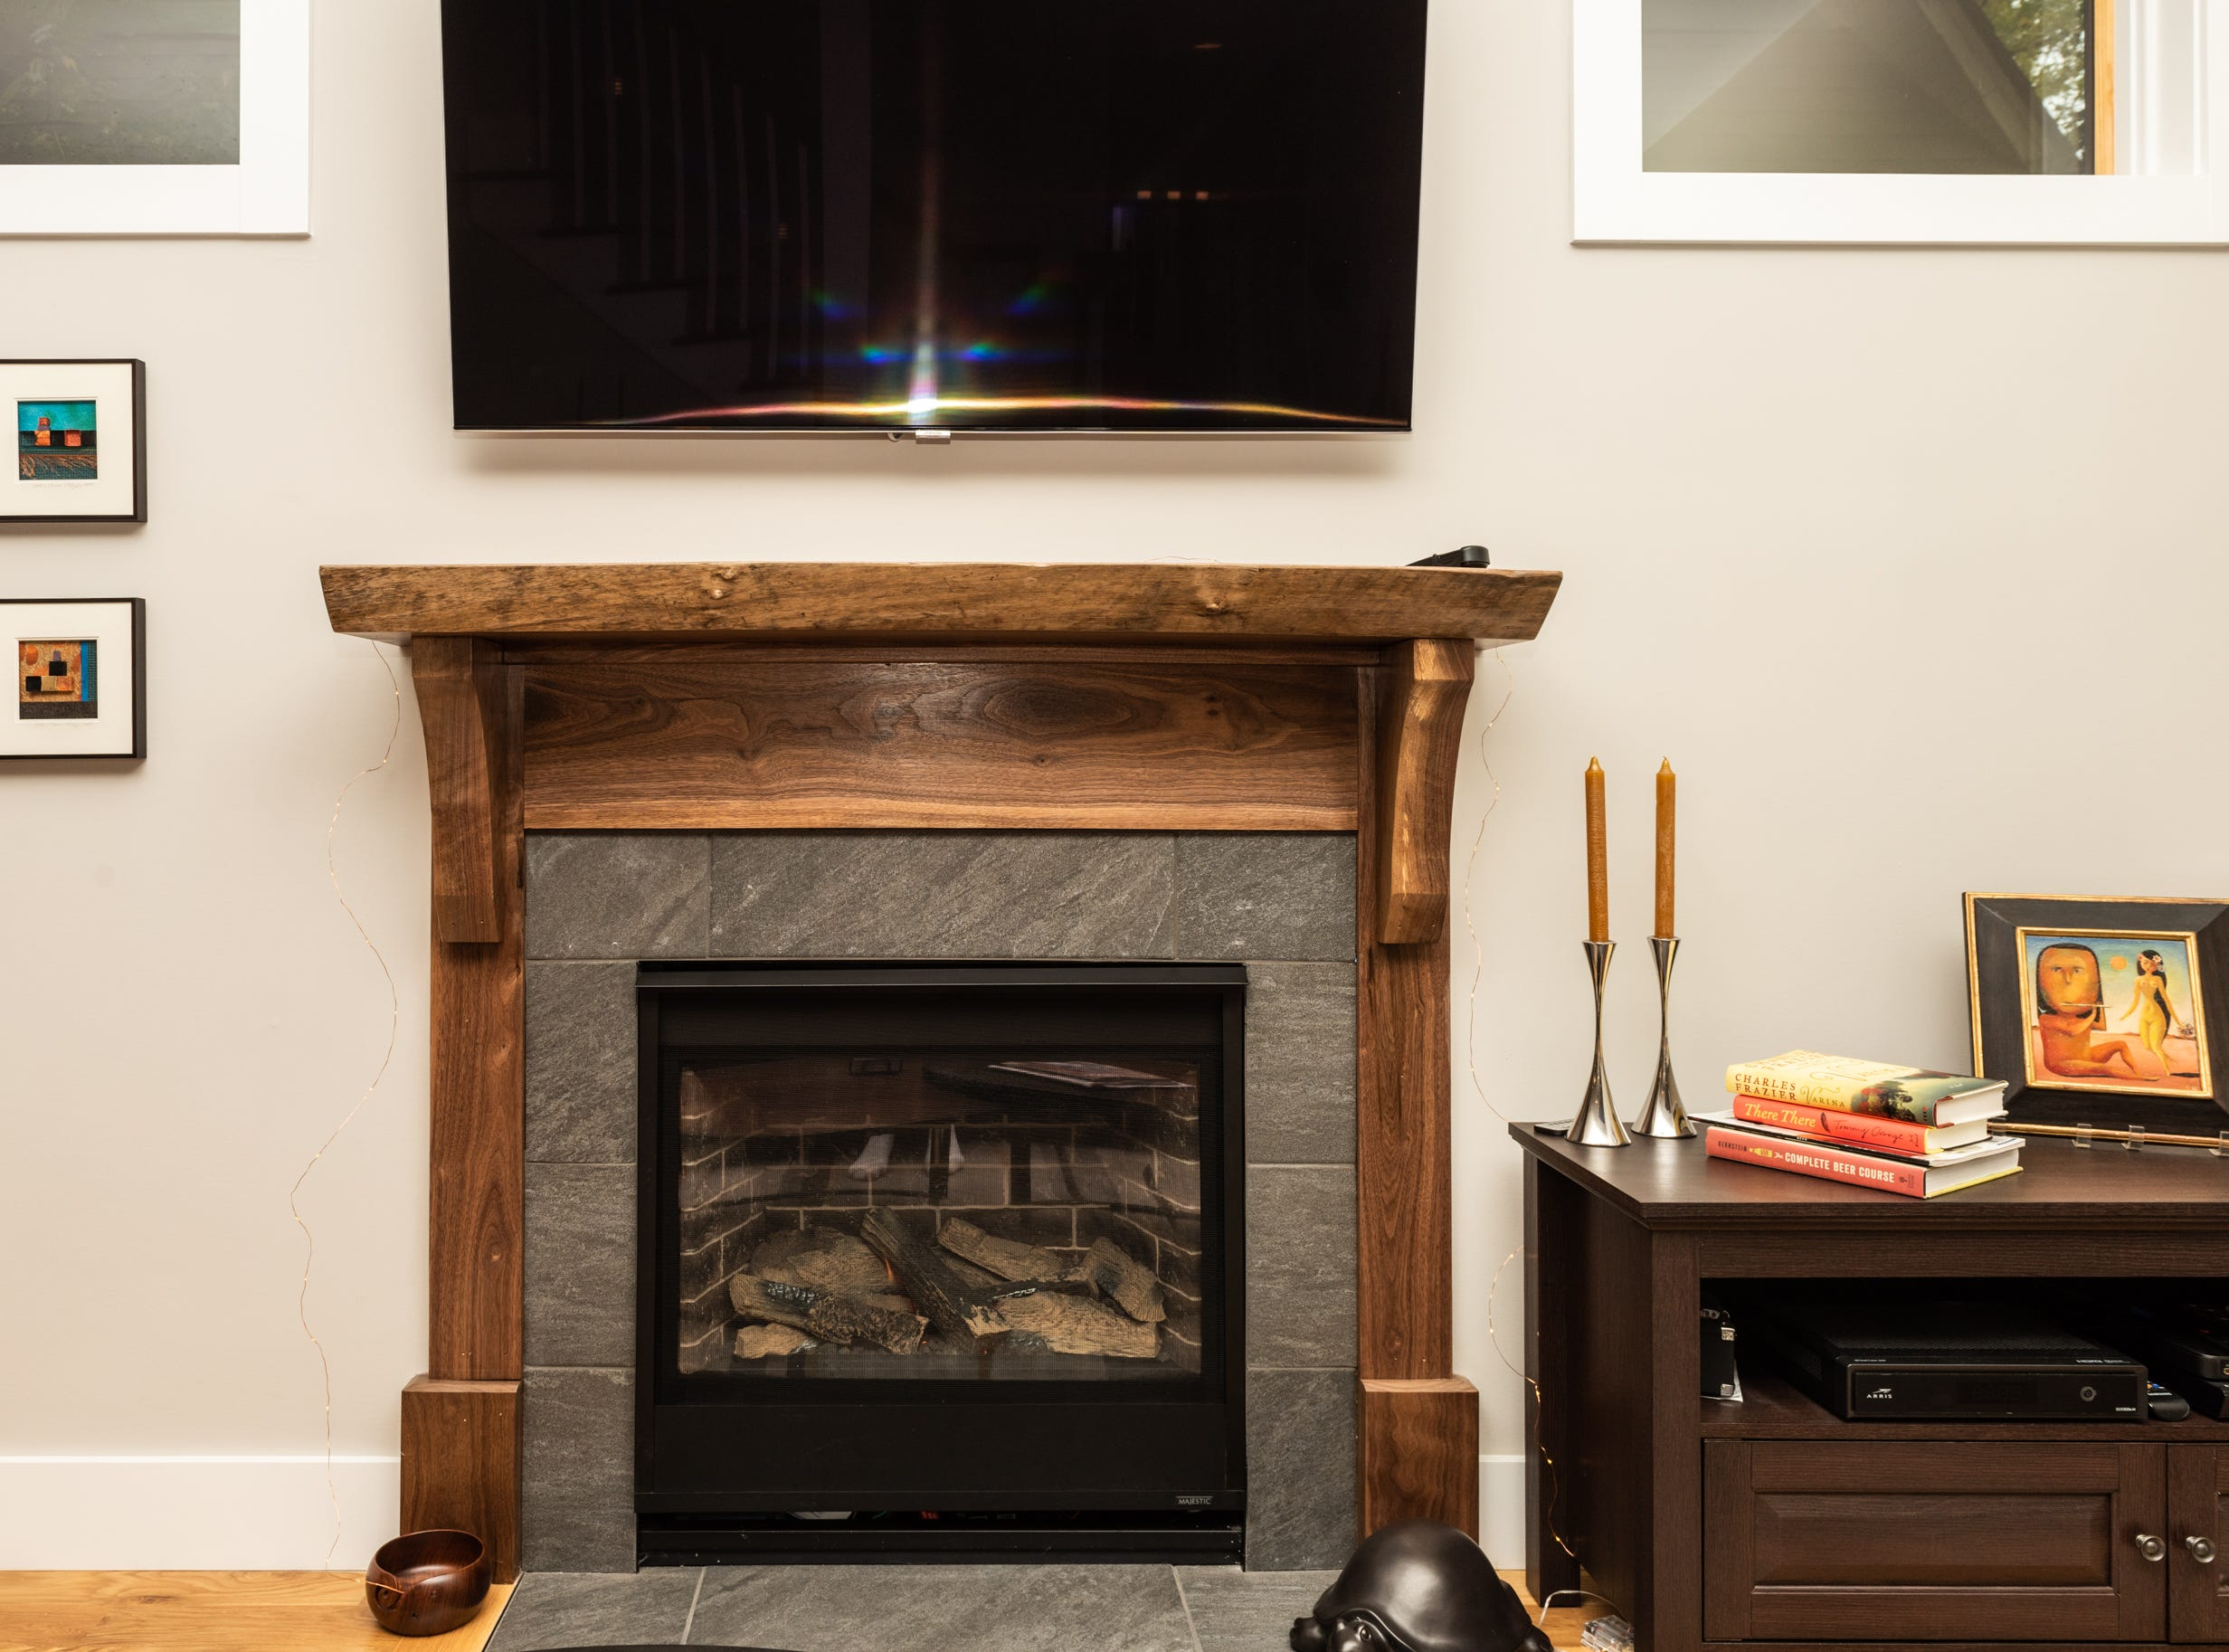 This wooden mantle i the livnig room was made locally.